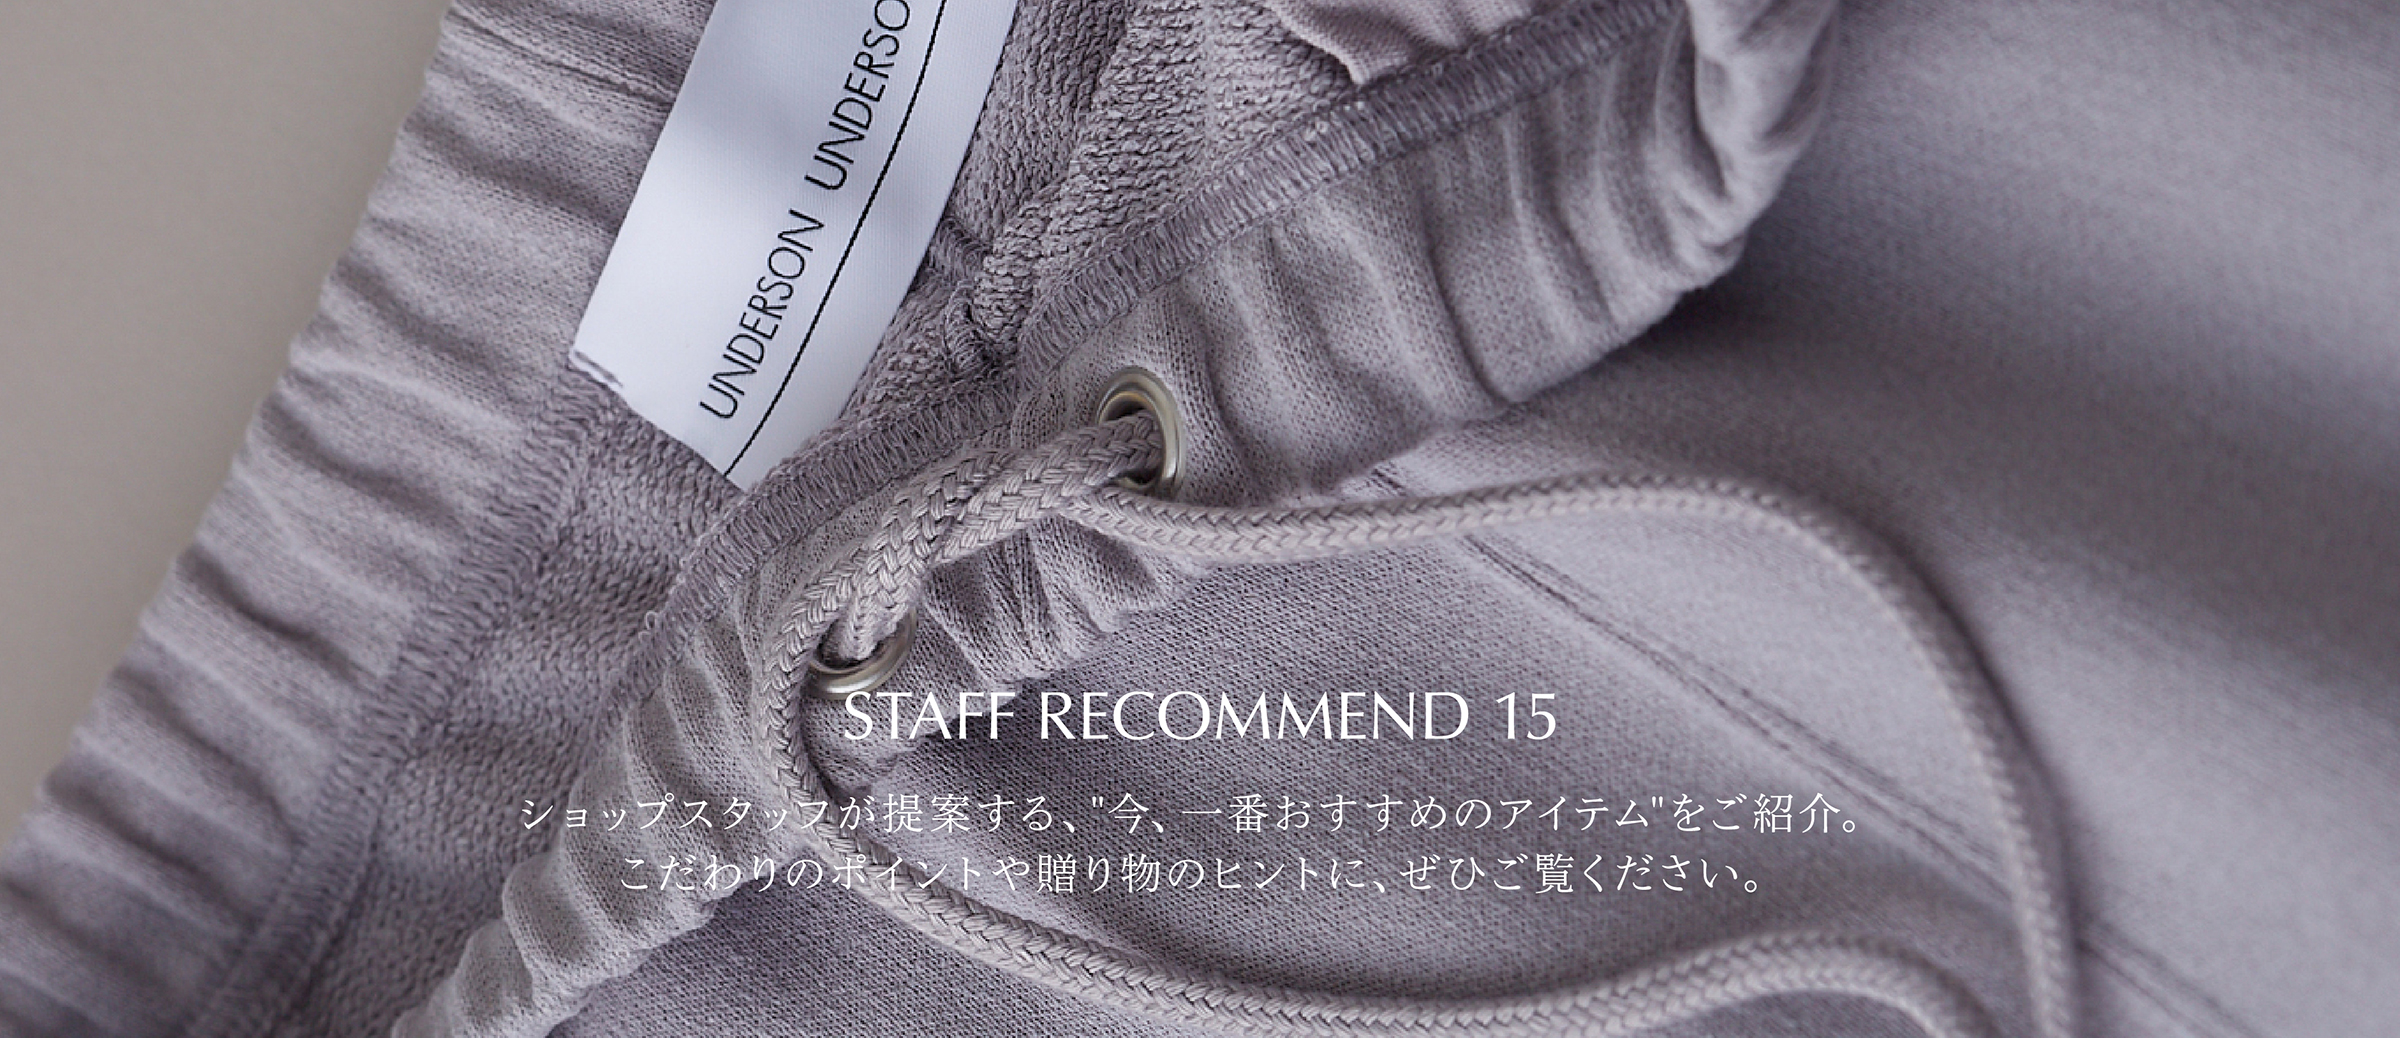 STAFF RECOMMEND 15